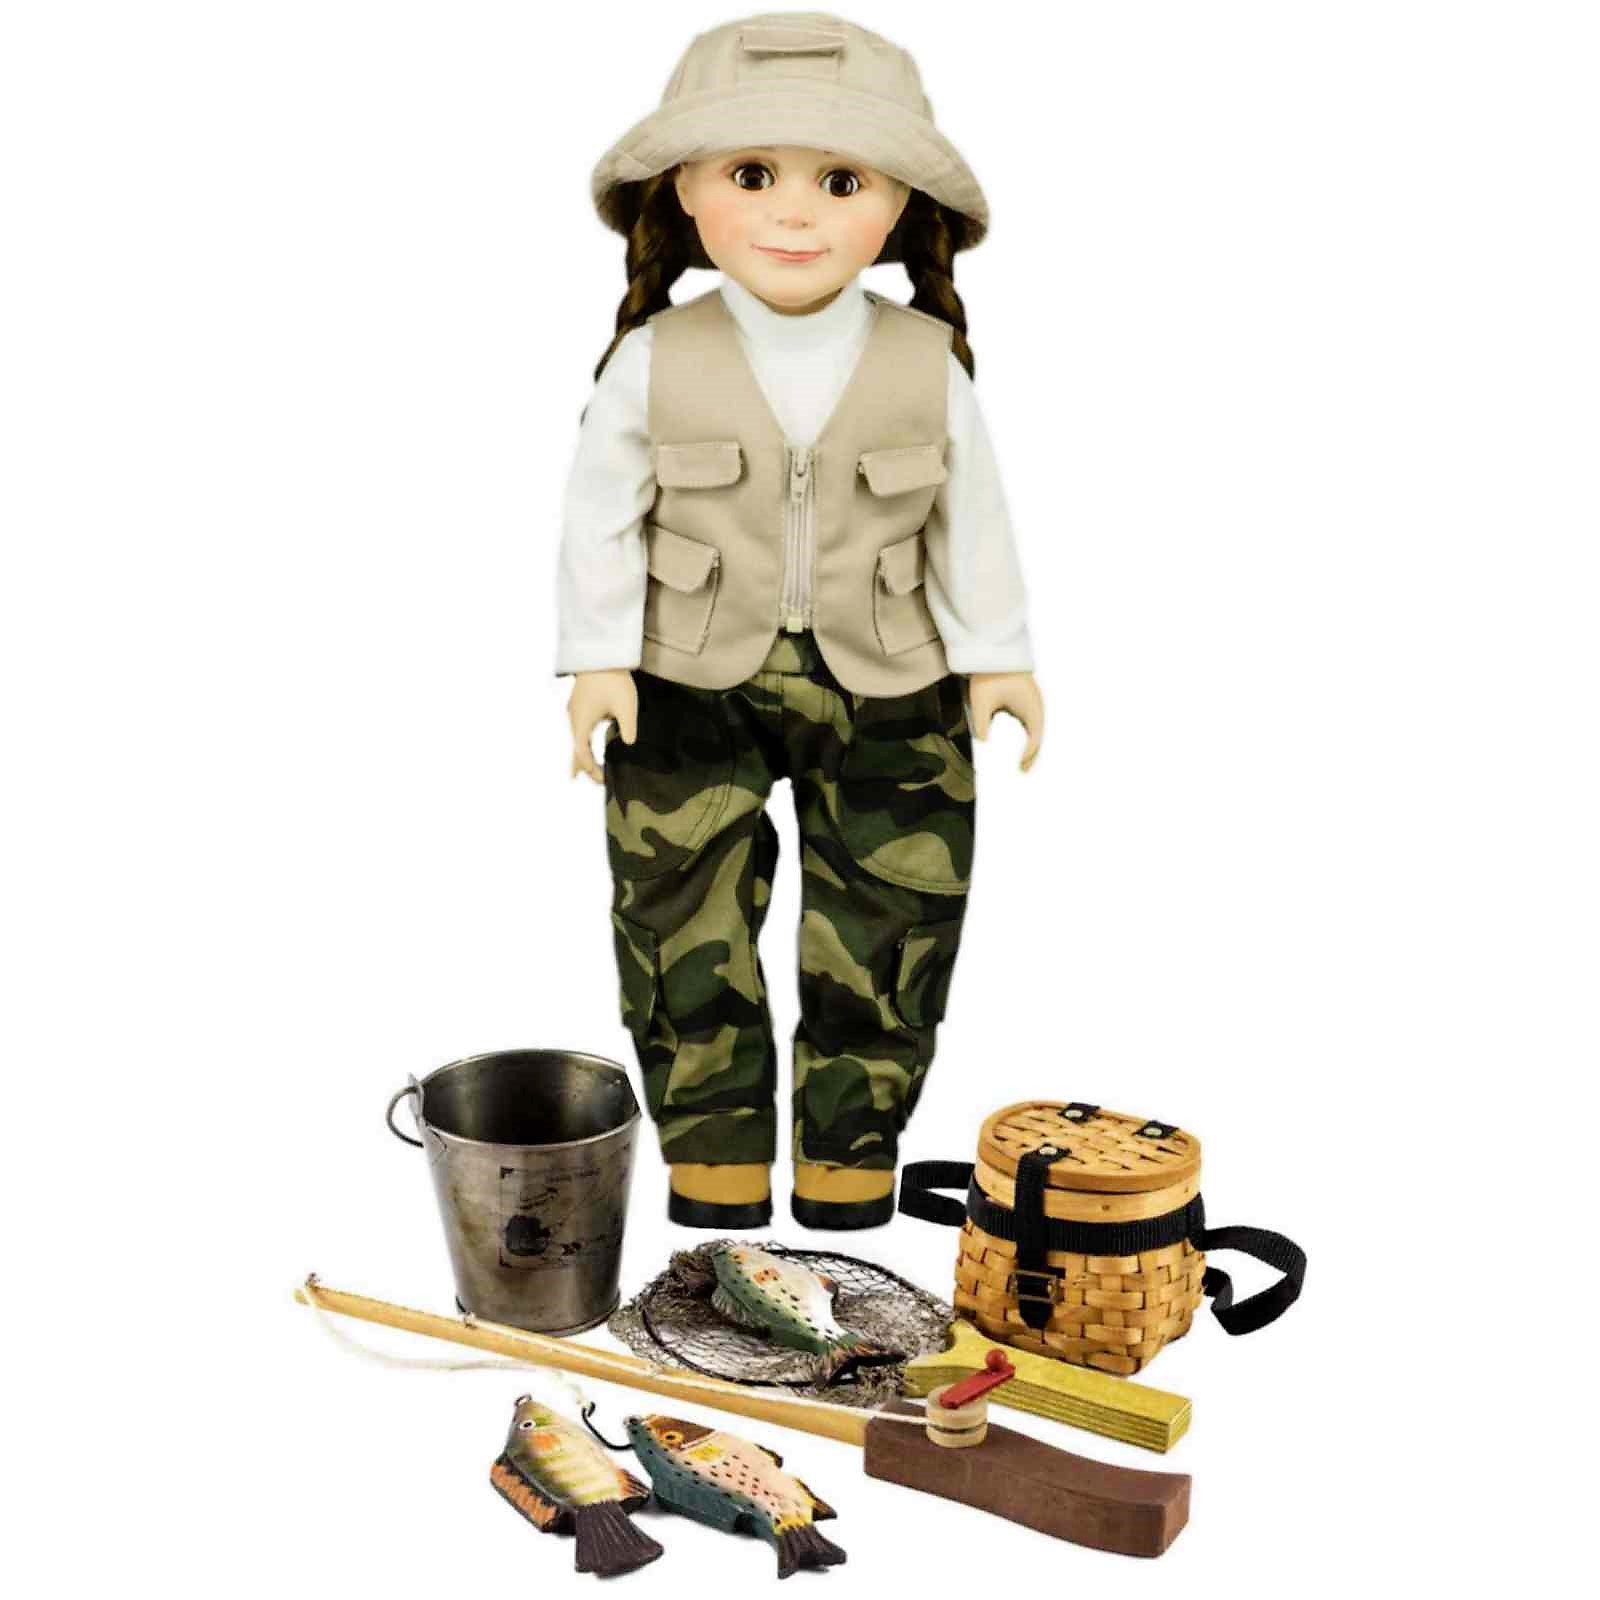 18 Inch Doll Complete 4 Pc Fishing Clothes +Pole, 3 Fish, Creel, Bucket & Net